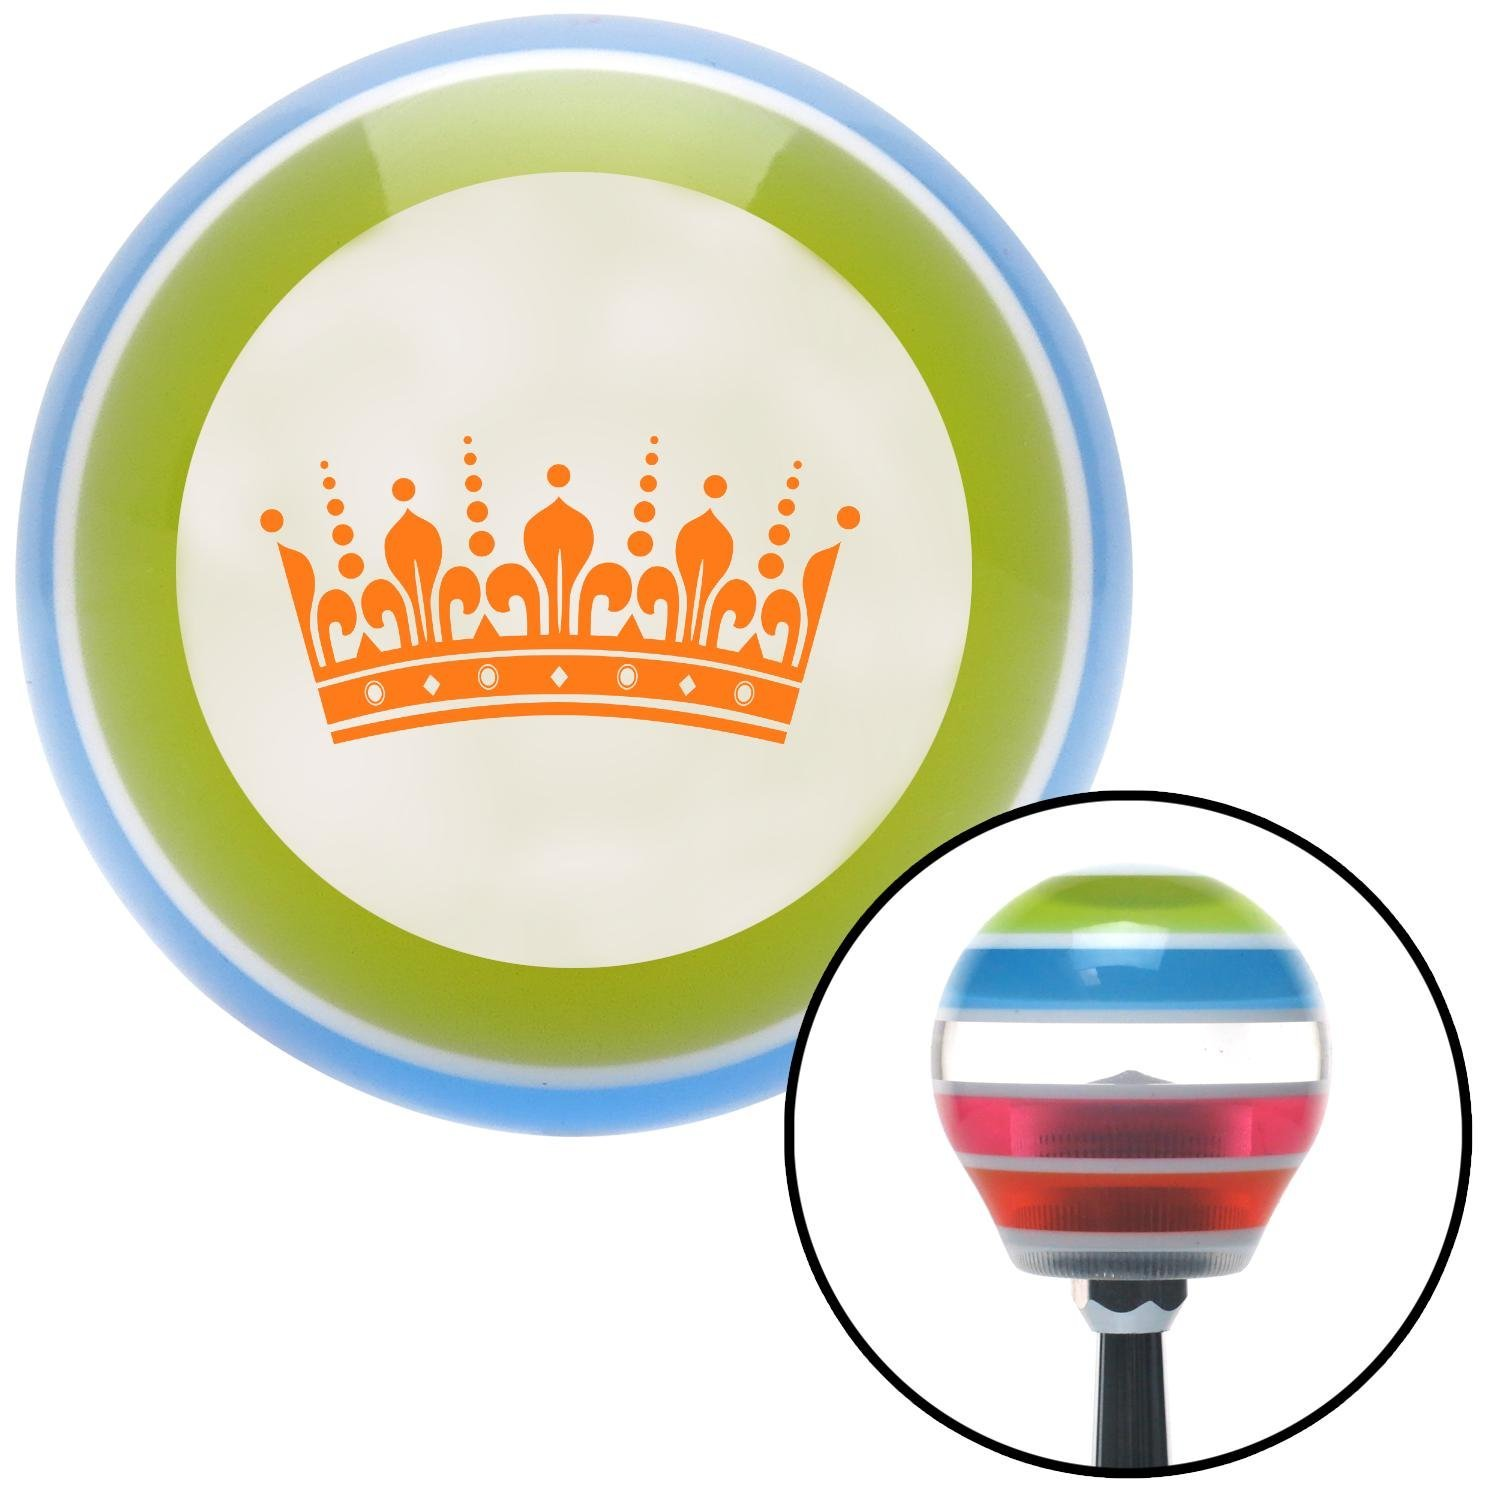 Orange Kings Crown American Shifter 132149 Stripe Shift Knob with M16 x 1.5 Insert